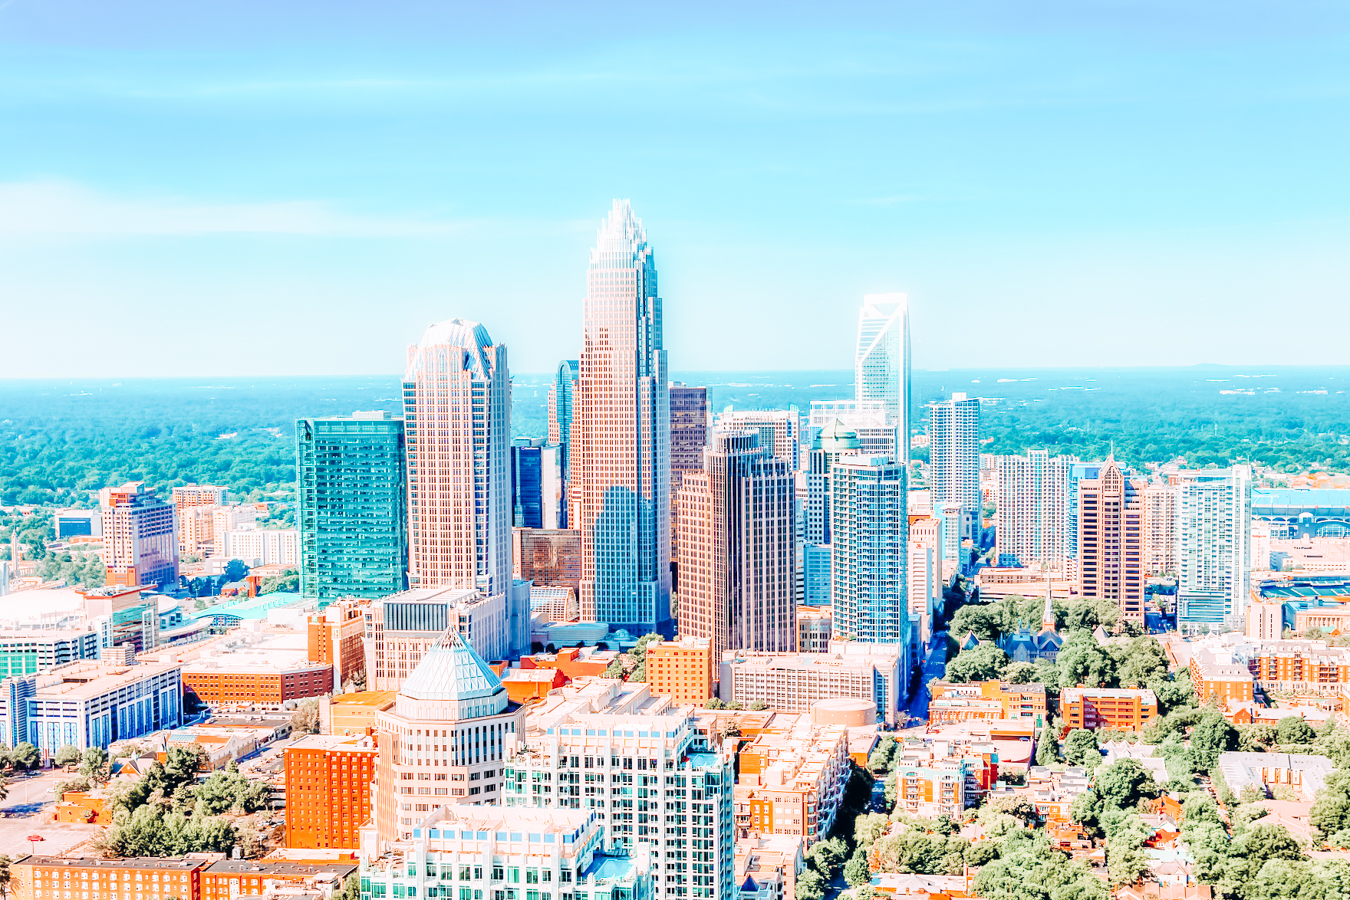 A view of Charlotte